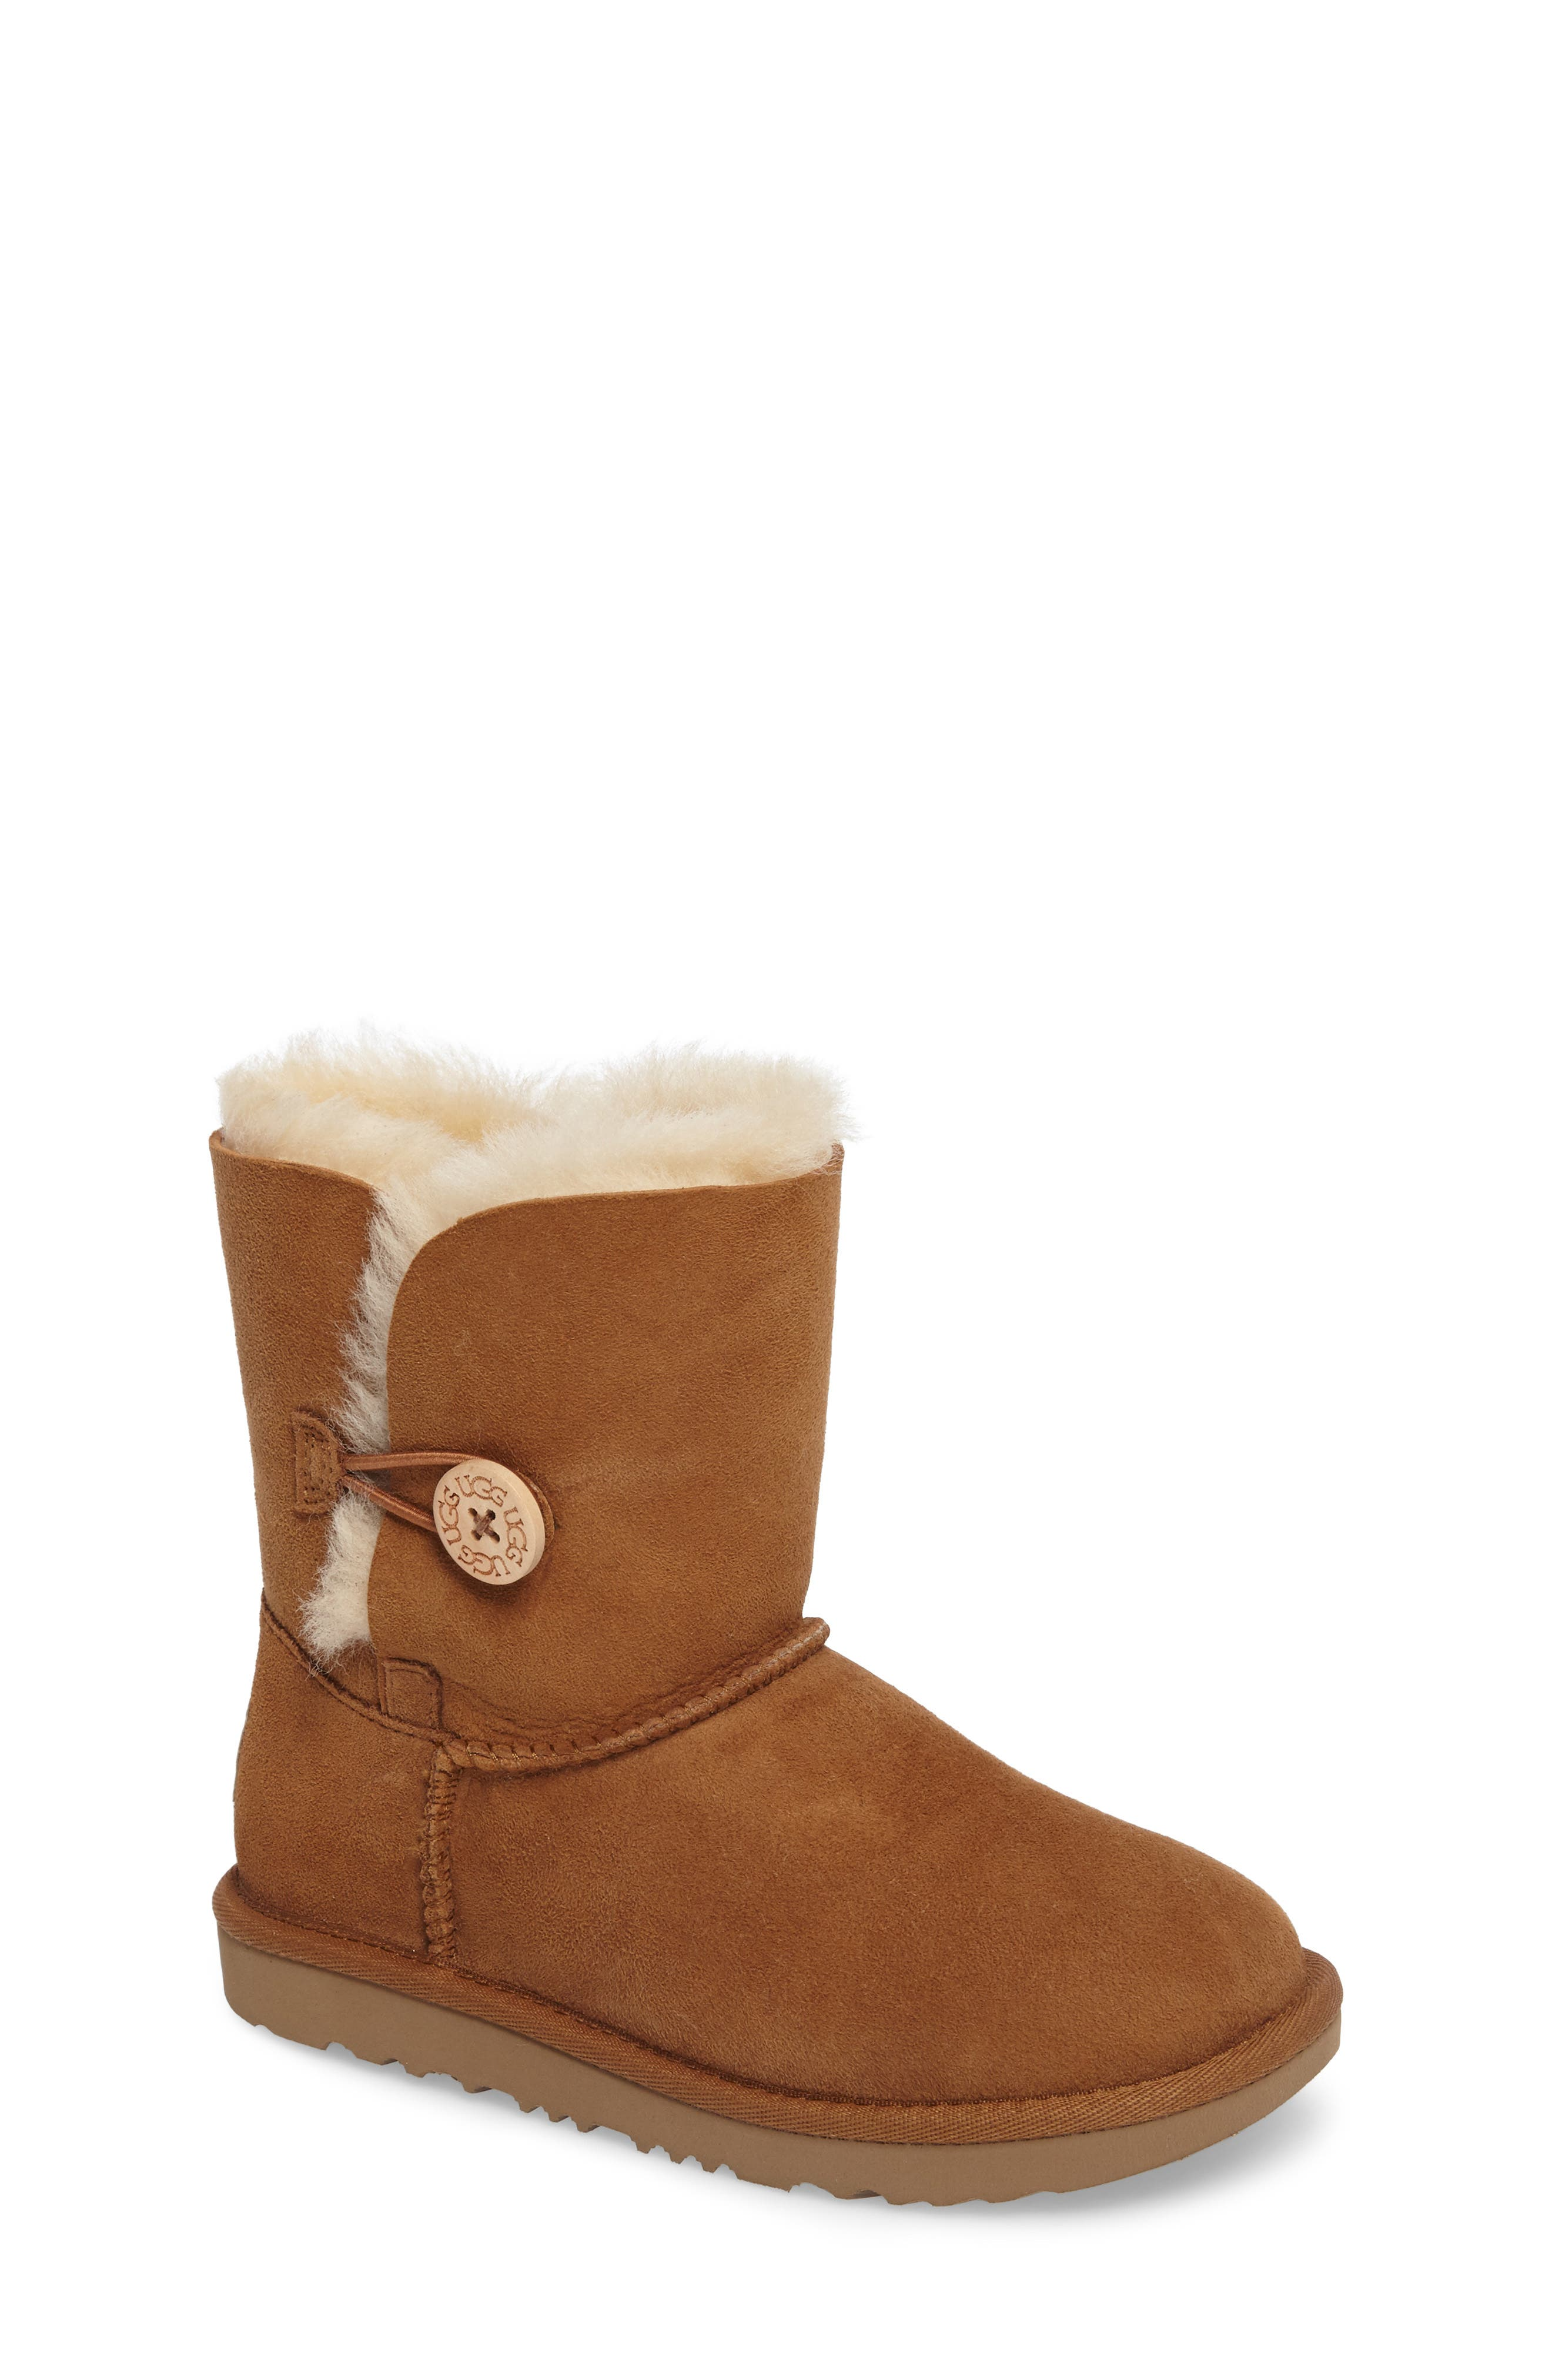 Alternate Image 1 Selected - UGG® Bailey Button II Water Resistant Genuine Shearling Boot (Walker, Toddler, Little Kid & Big Kid)